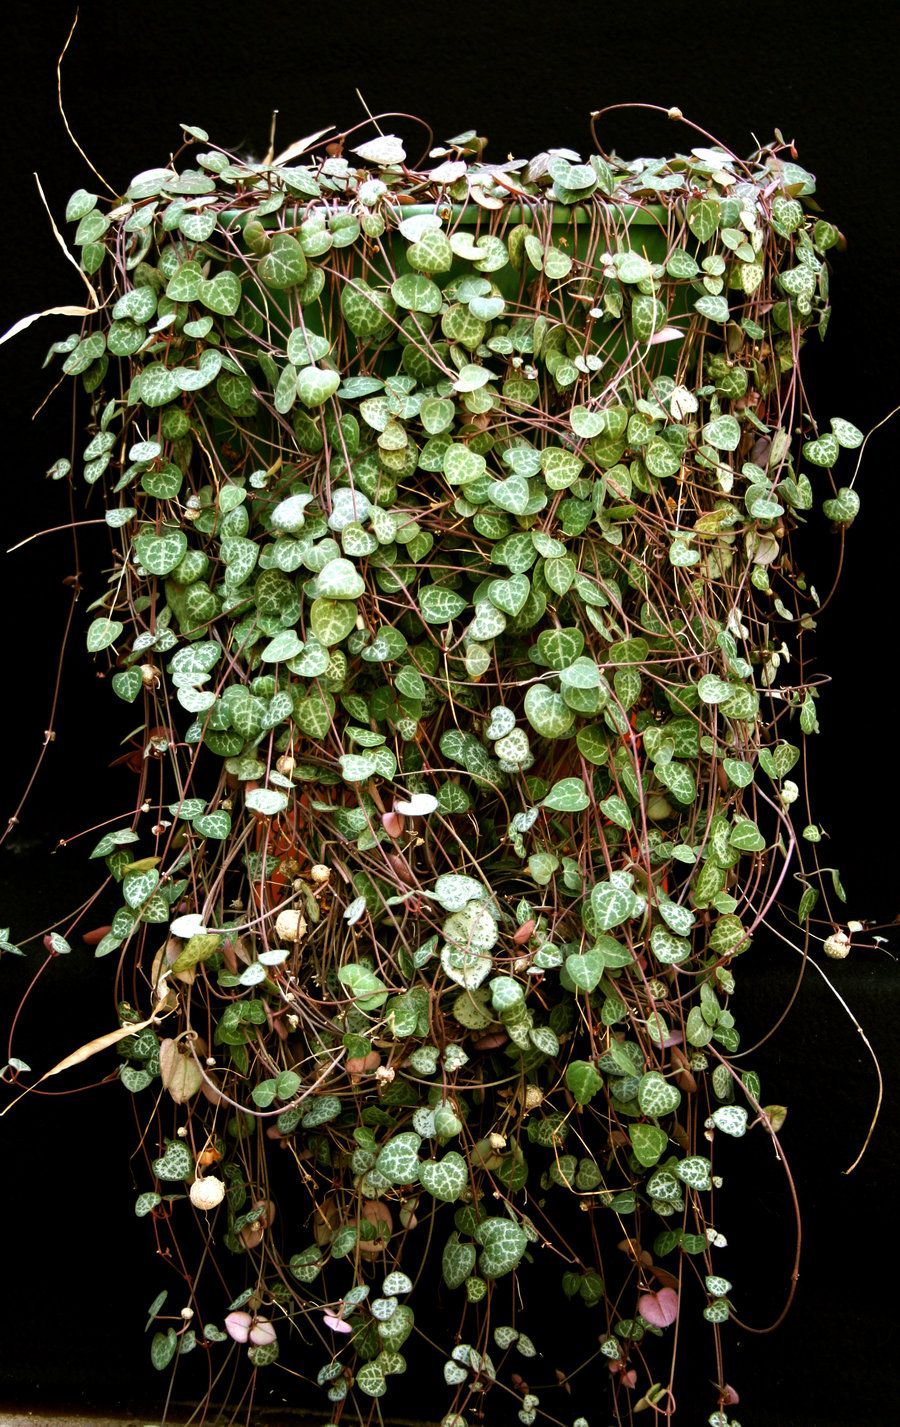 Chain Of Hearts Ceropegia Woodii An Evergreen Trailing Vine With